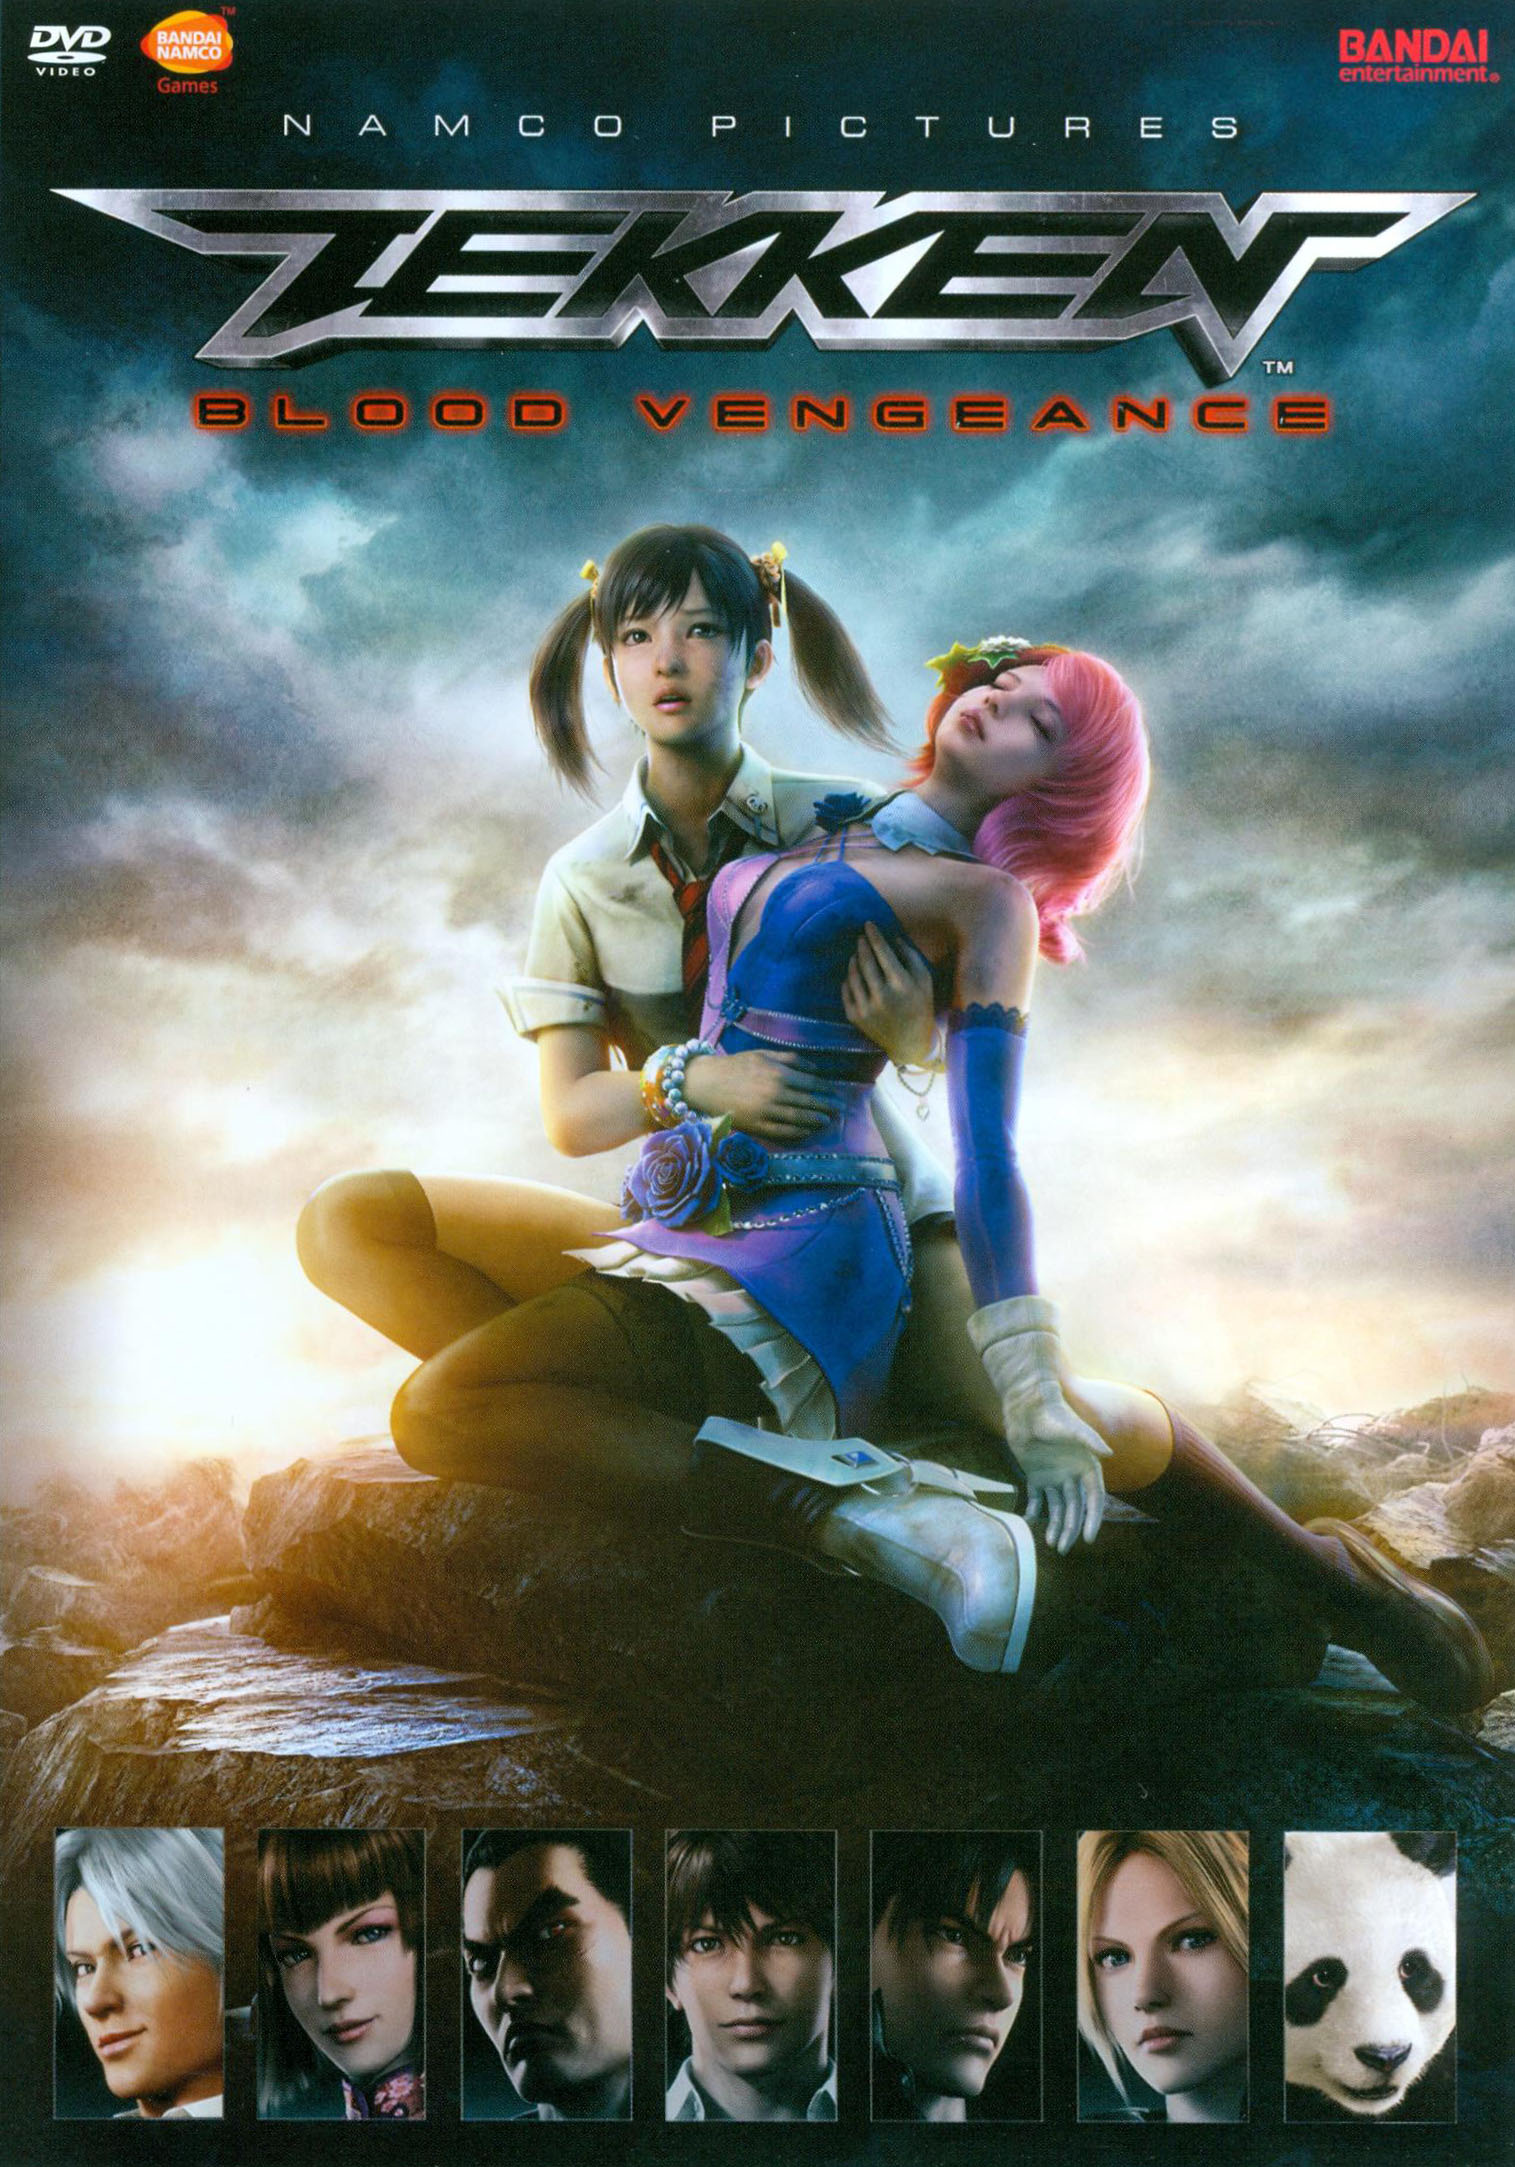 Tekken Blood Vengeance Full Movie Free Download In Hindi Mp4 Movies